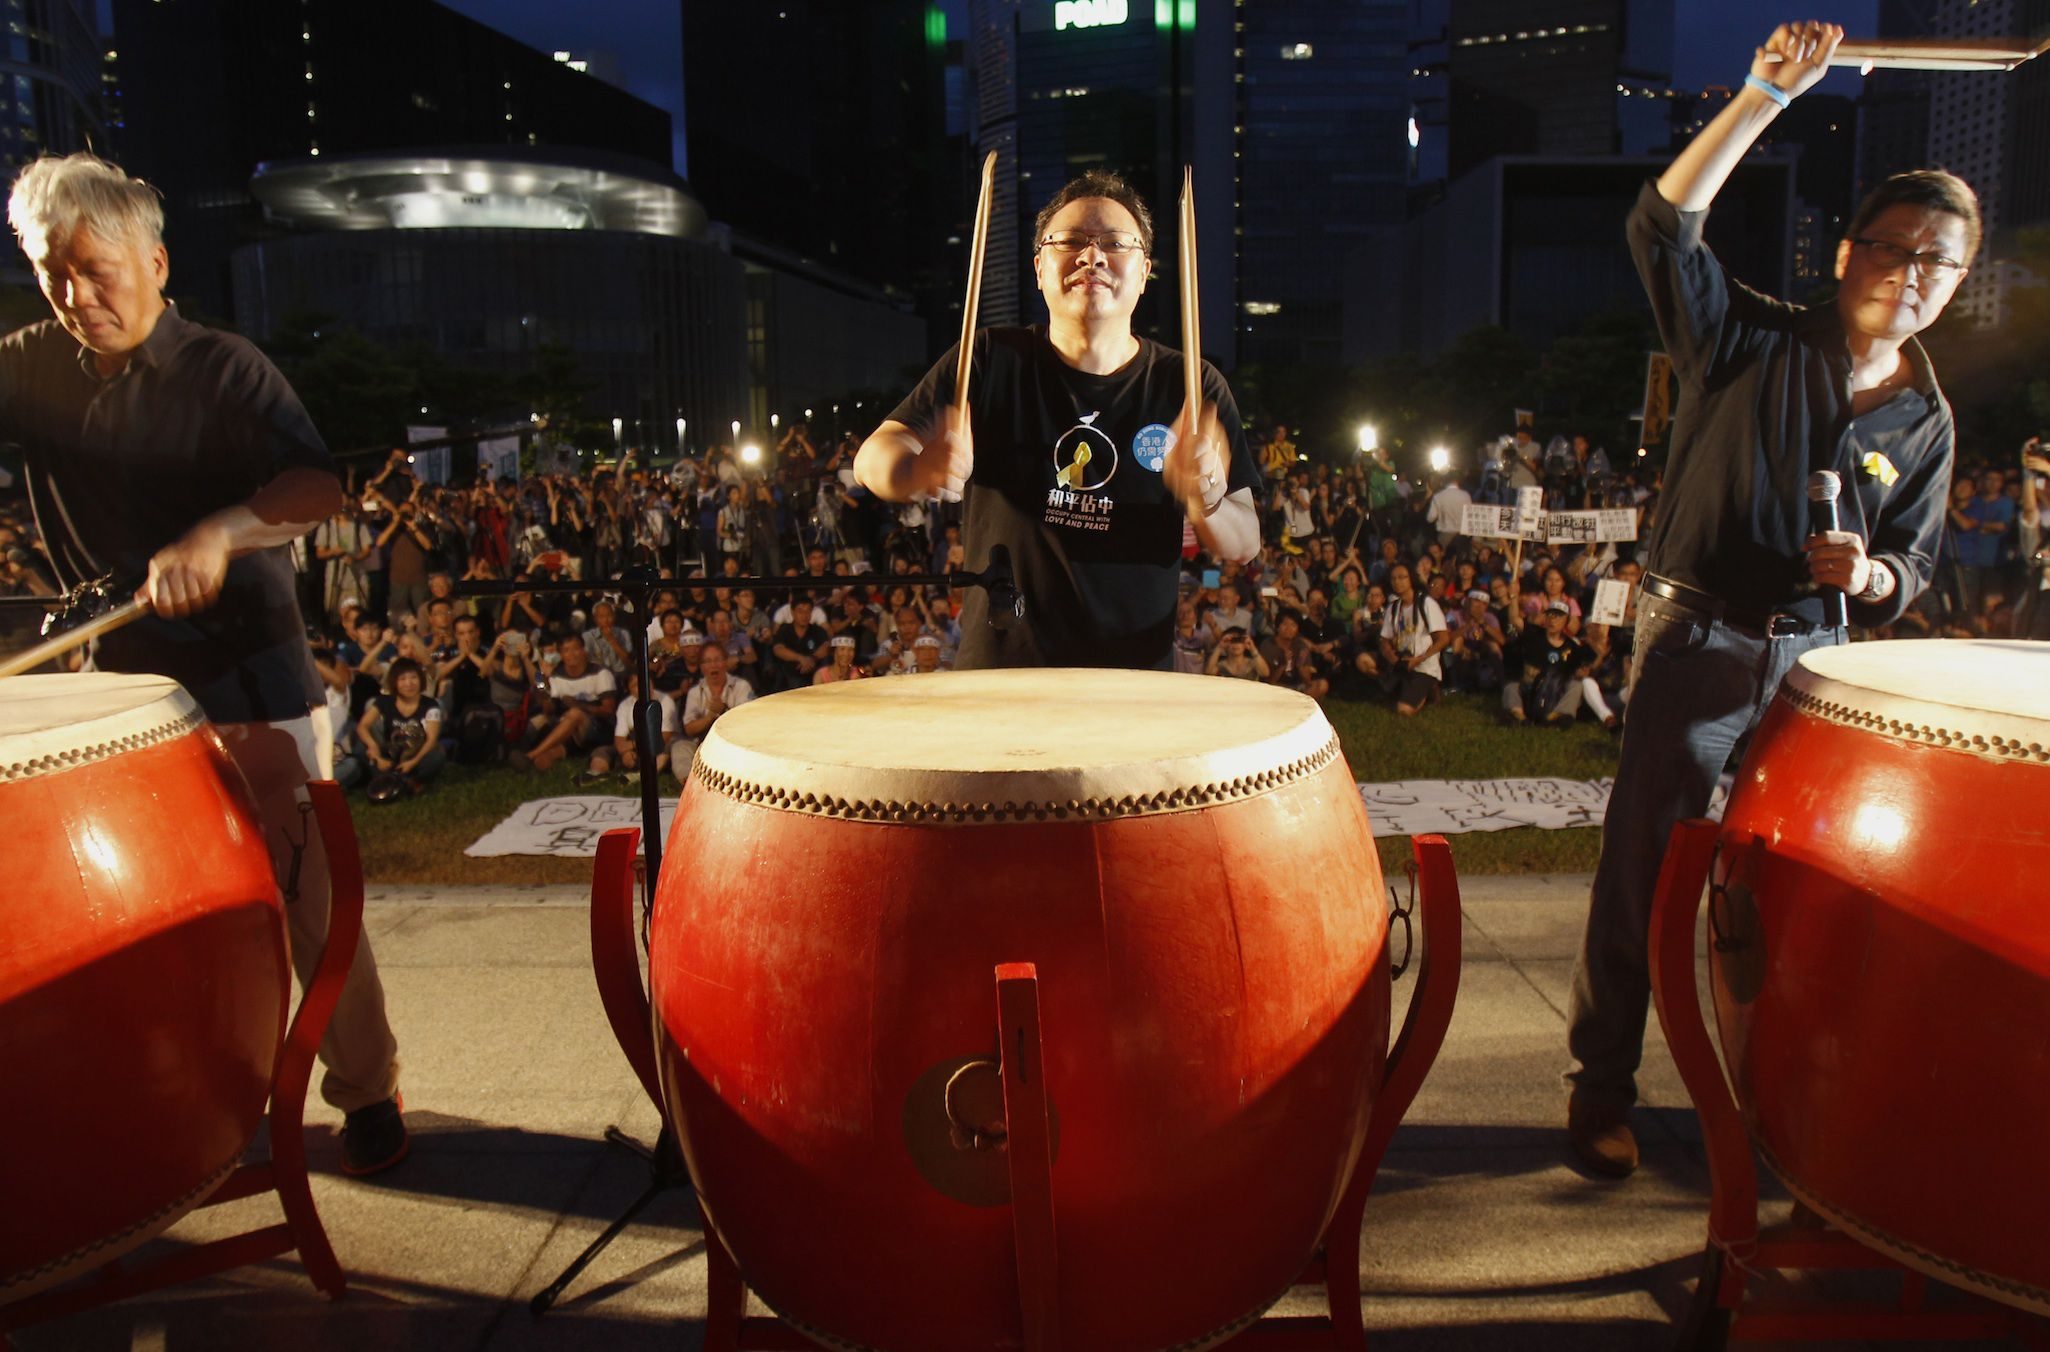 Founders of the Occupy Central civil disobedience movement (L-R), Reverend Chu Yiu-ming, academic Benny Tai and academic Chan Kin-man, hit drums during a campaign to kick off the movement in front of the financial Central district in Hong Kong August 31, 2014